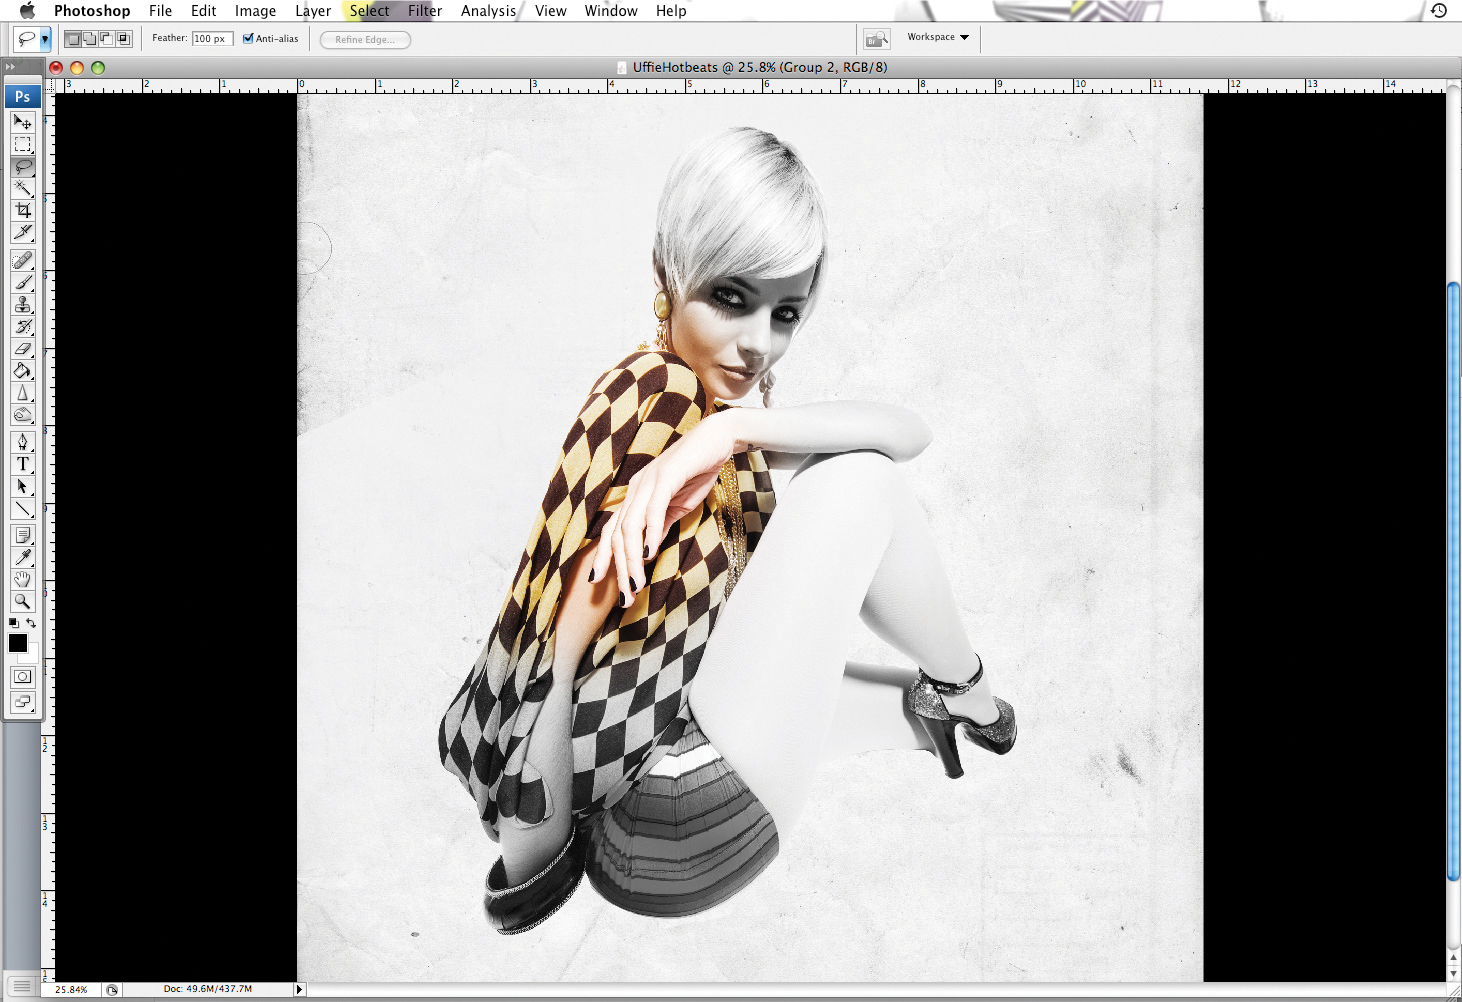 Photoshop tutorial: Blend a photo with vectors and smudges